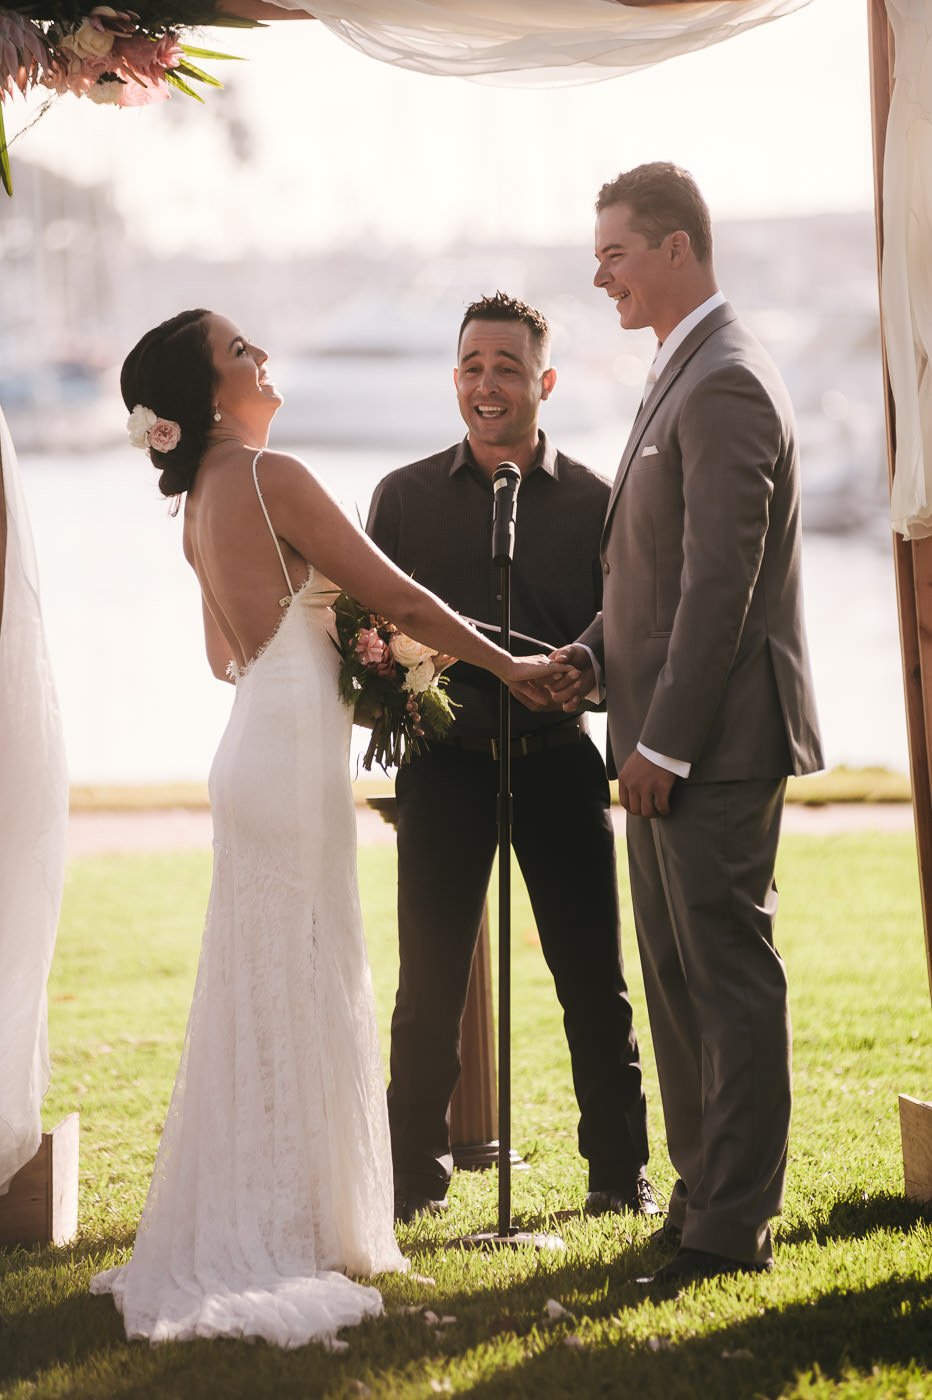 Marriage Officiant makes the bride and groom laugh during the ceremony.